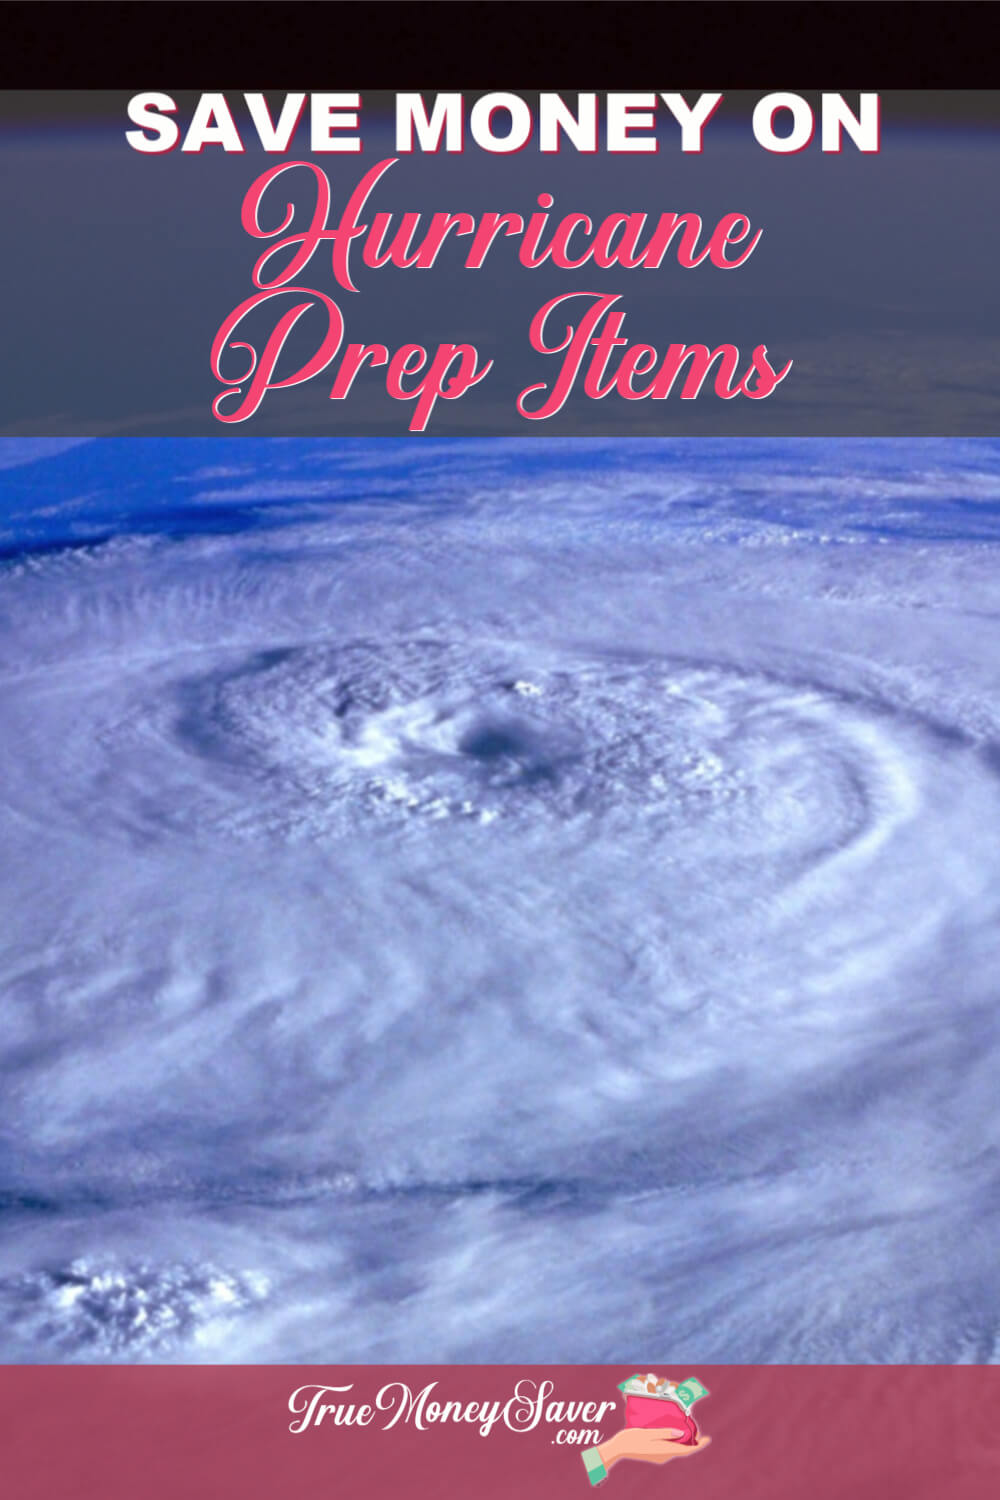 There is a way to prepare for storms so you don\'t get caught off guard! Be prepared with these money saving Hurricane Preparedness Tips! I'll even share my Hurricane Preparedness List and my nifty DIY Hurricane Hacks!  #truemoneysaver  #prepareforstorms  #hurricaneprep  #hurricaneseason #hurricane #hurricaneseason #hurricaneready #storm #stormwatch #hurricanehacks #hurricanepreparedness #savingmoney